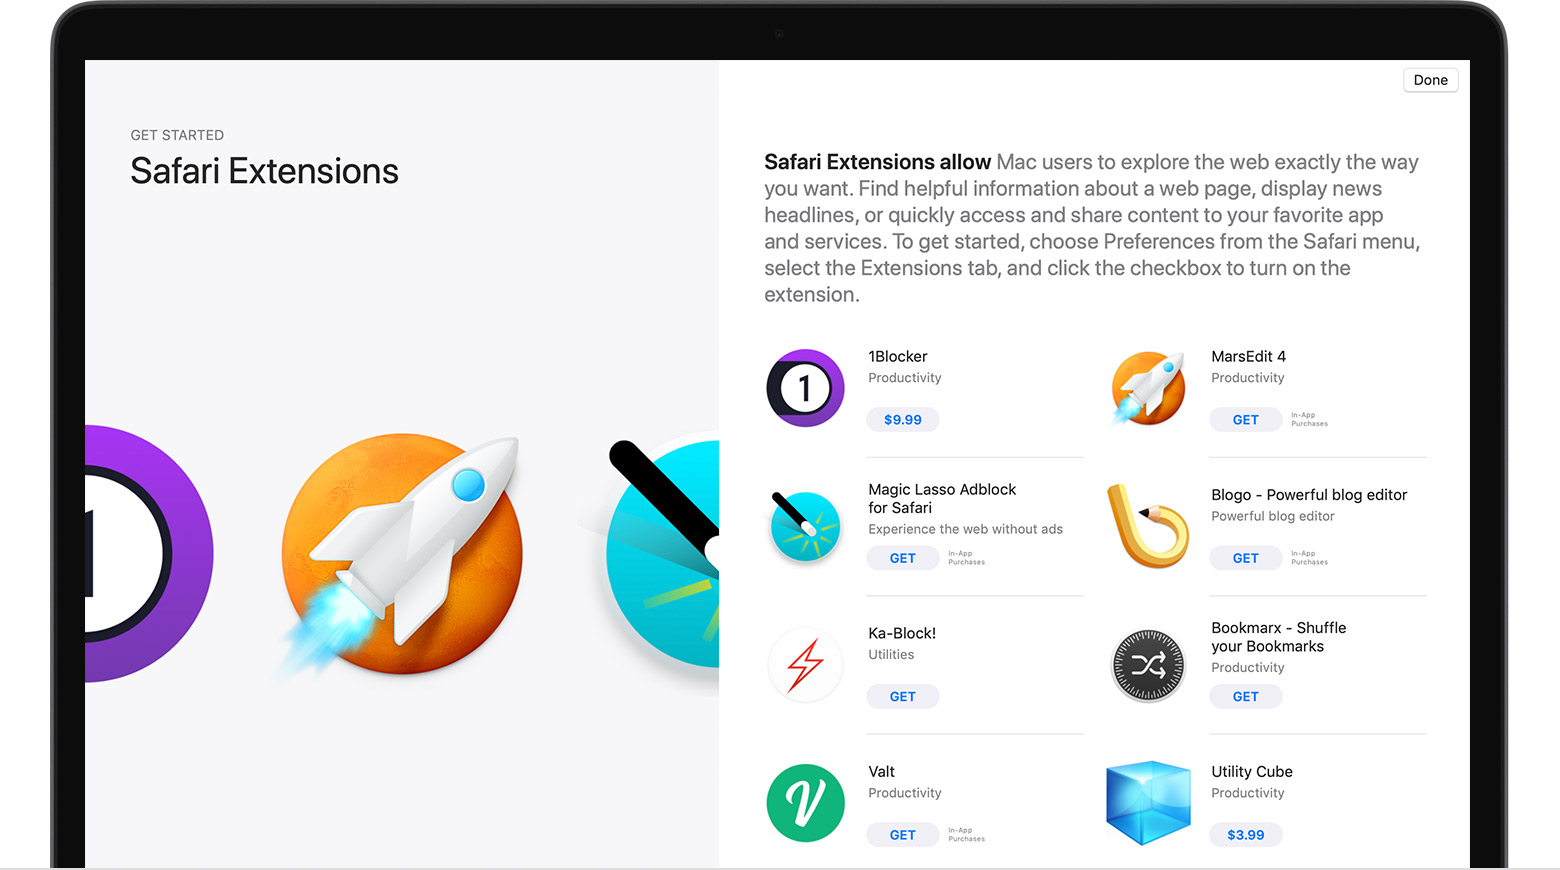 Install and manage Safari extensions on your Mac - Apple Support